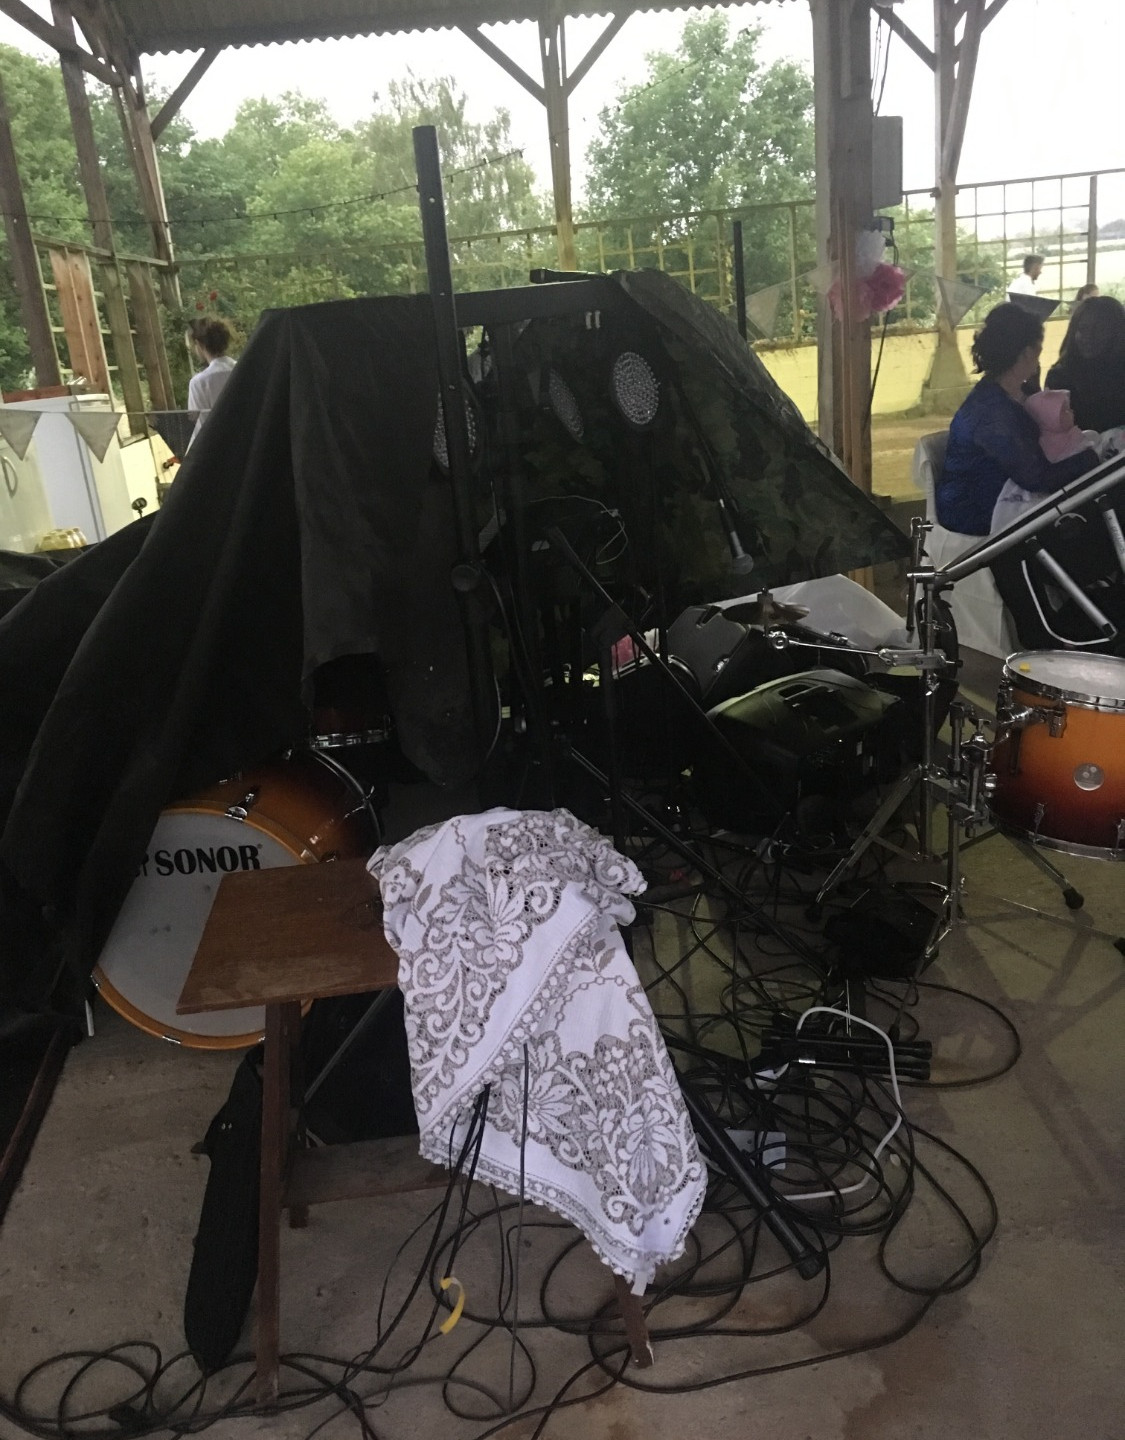 Equipment covered